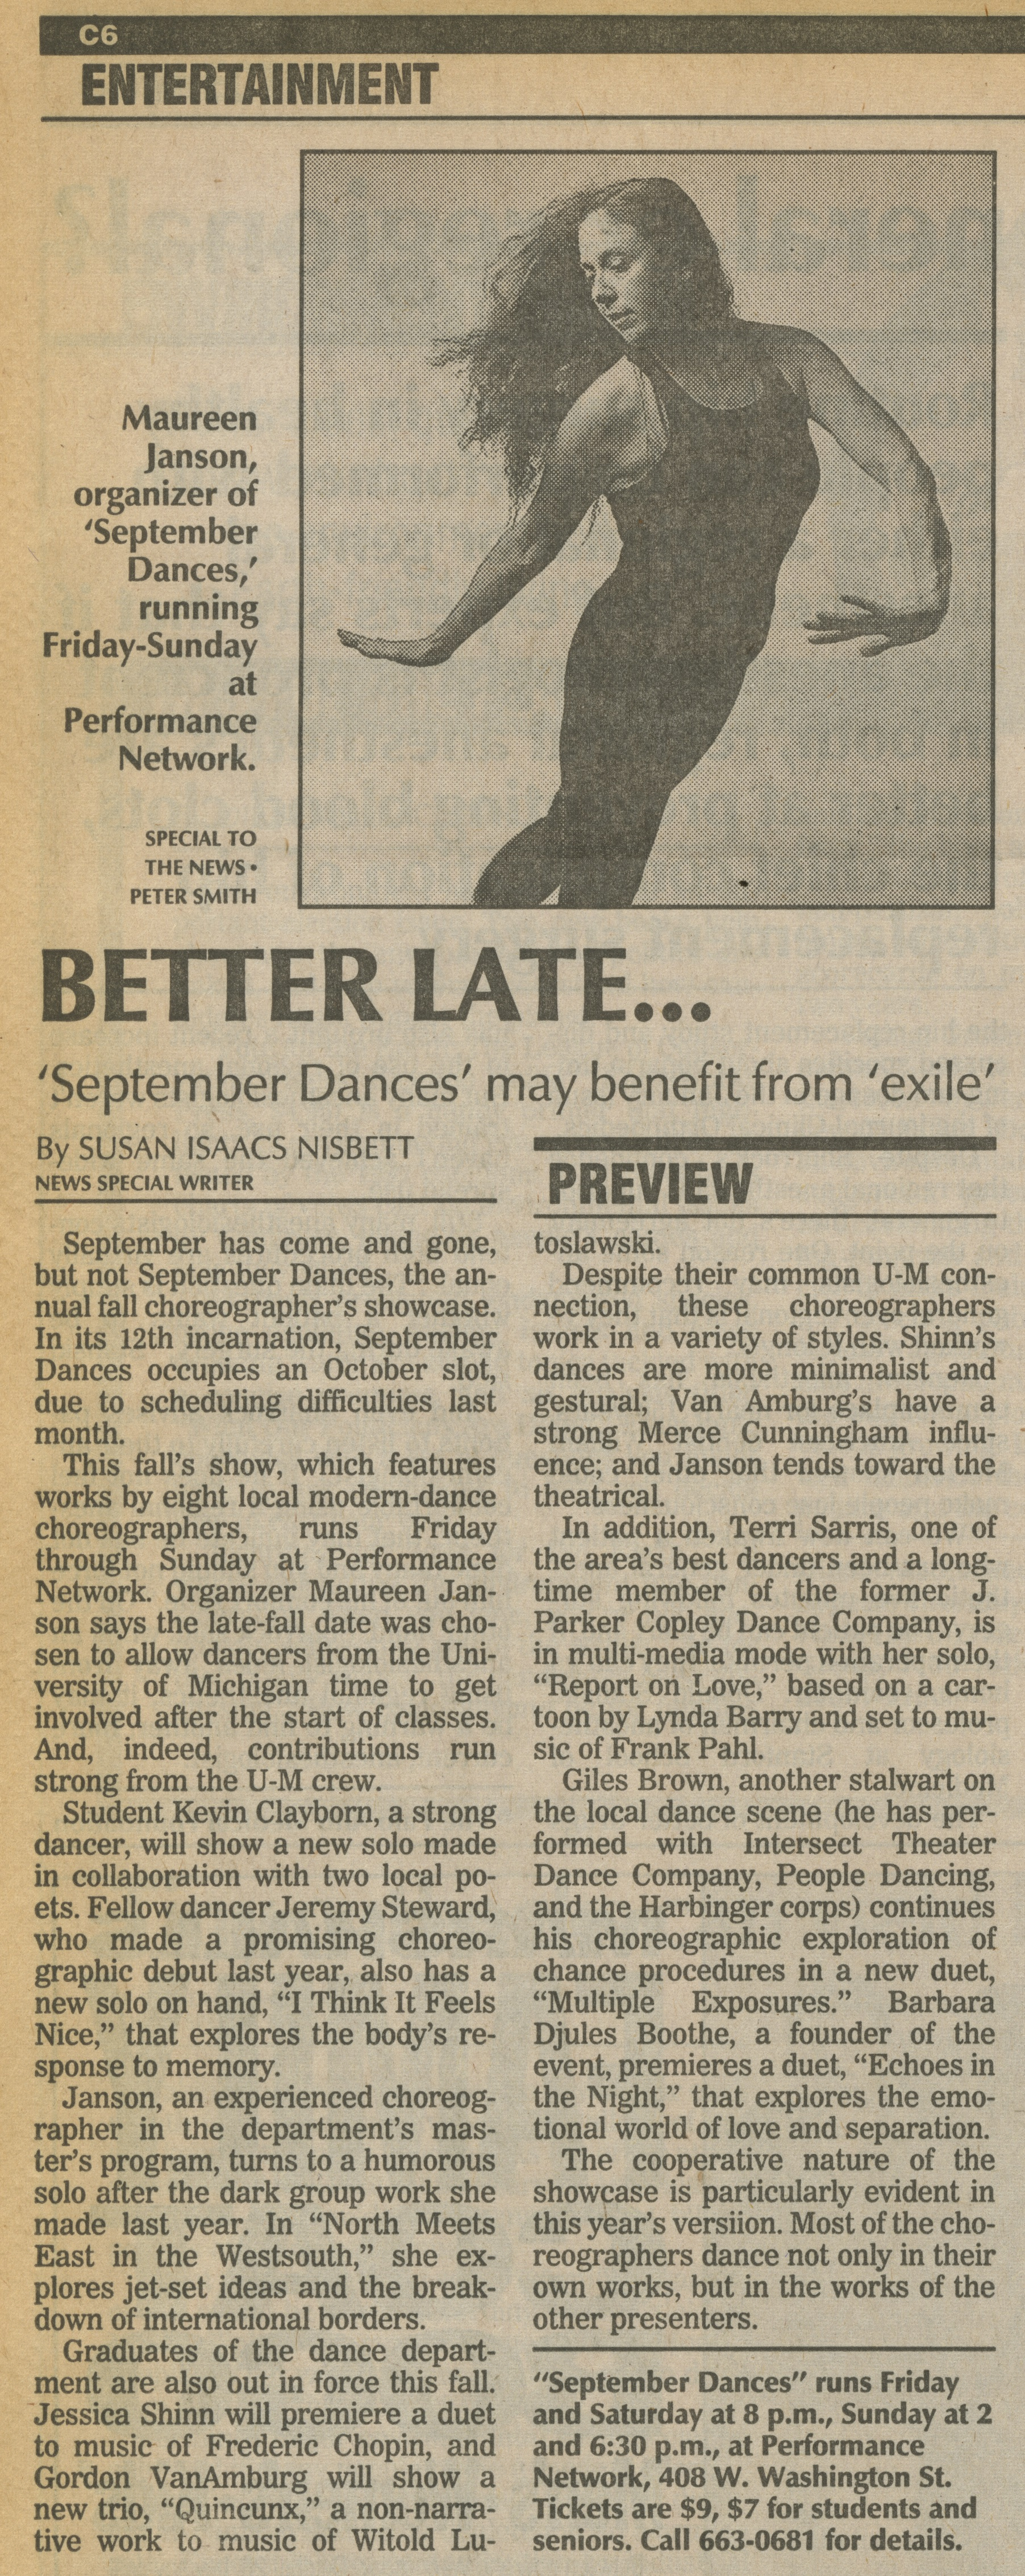 Better Late... 'September Dances' may benefit from 'exile' image